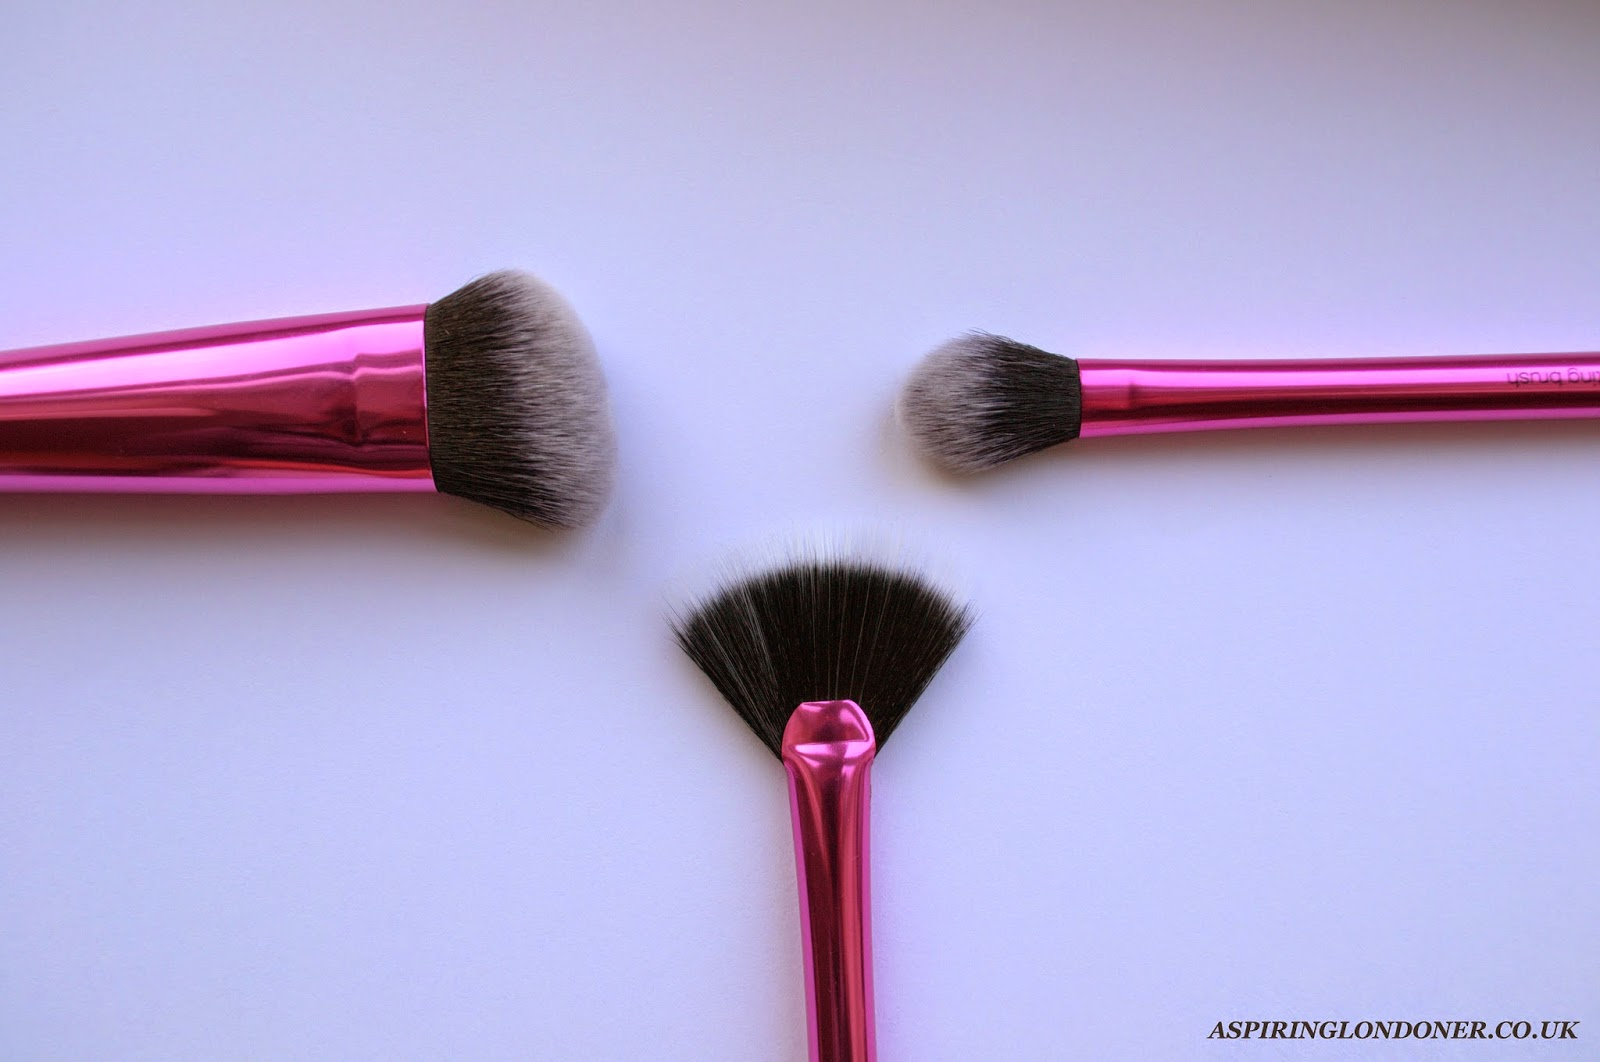 Real Techniques Collectors Edition Sculpting Set Makeup Brush Review - Aspiring Londoner